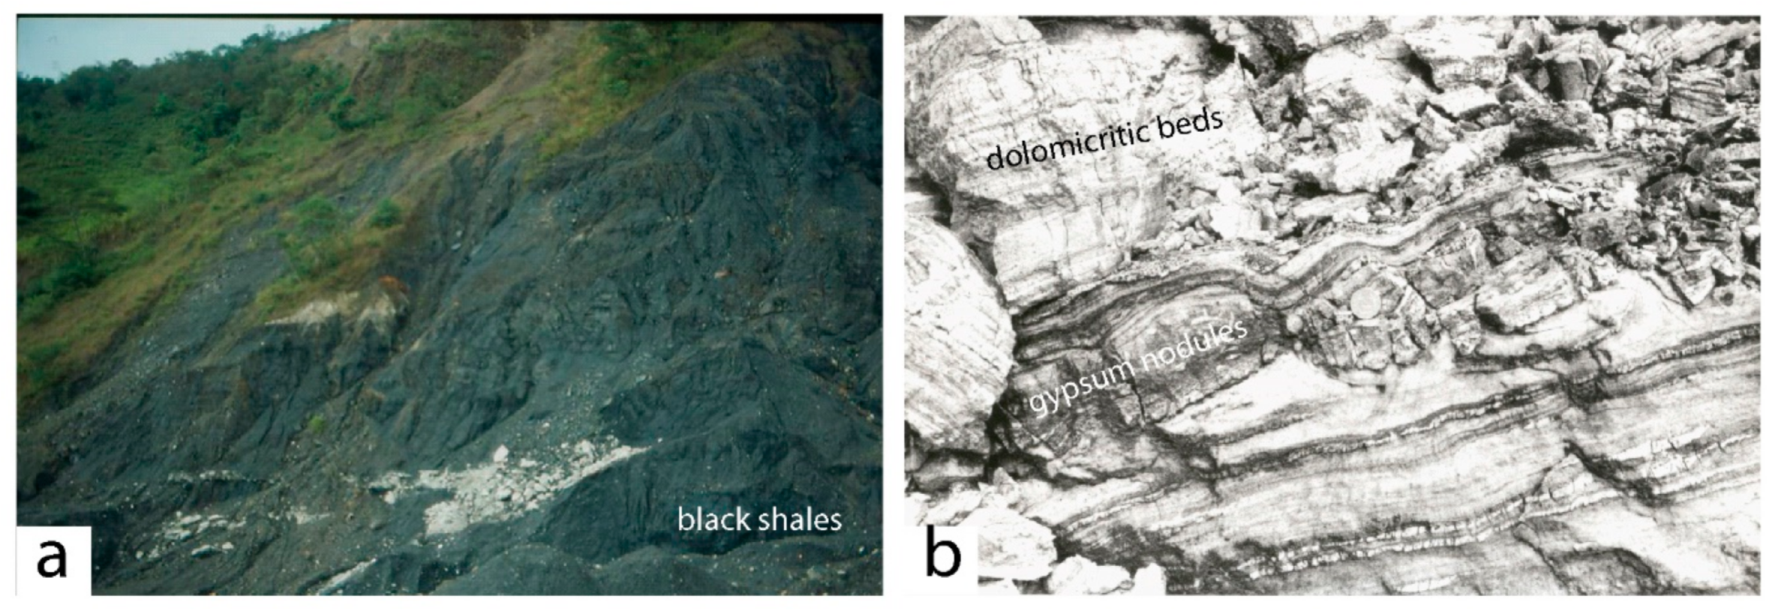 Minerals | Free Full-Text | Emerald Deposits: A Review and Enhanced